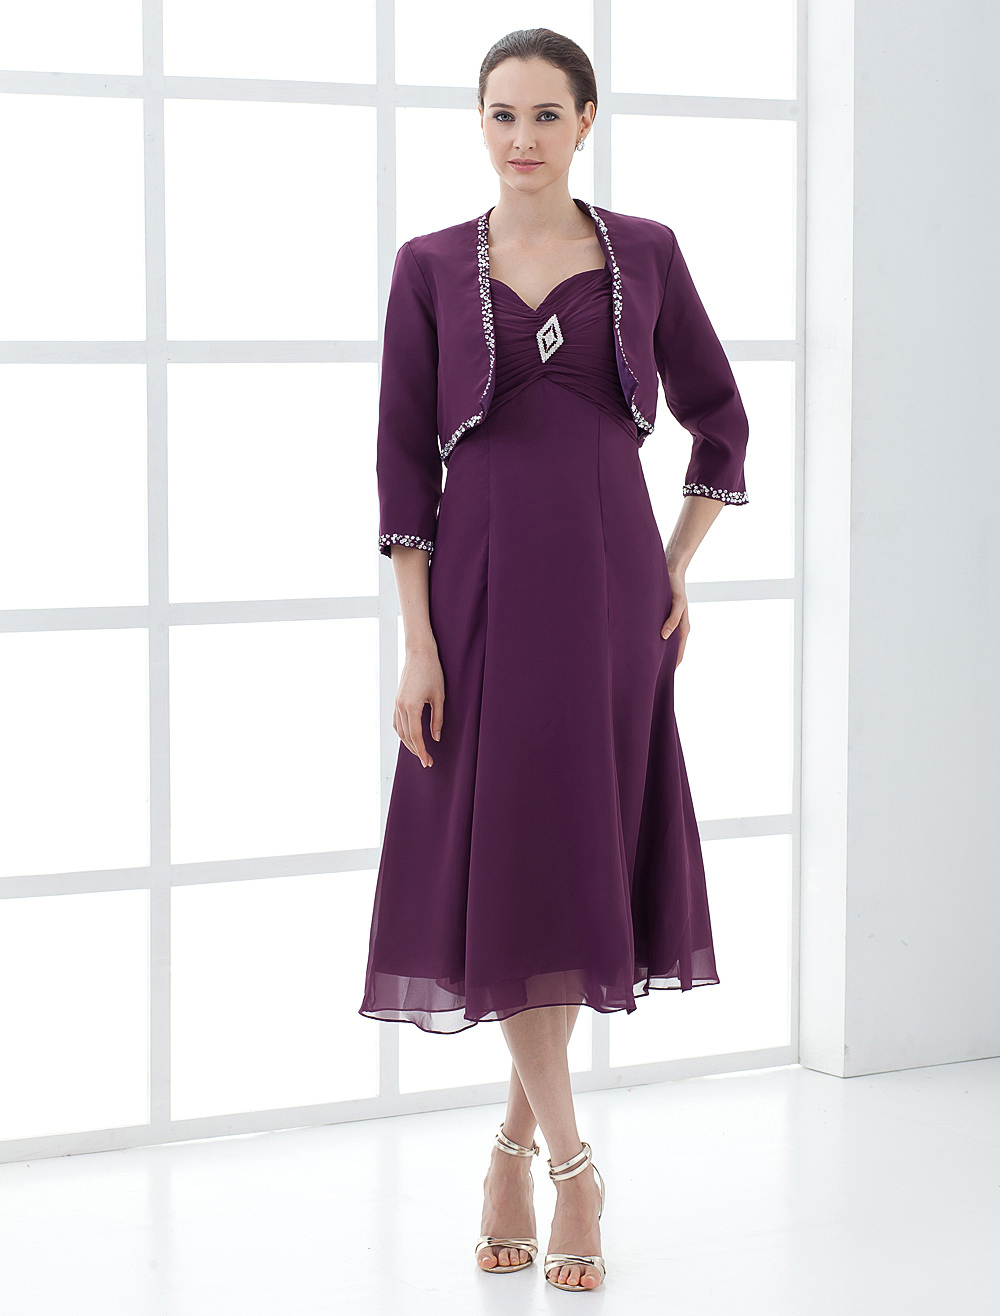 Grape Chiffon Mother of the Bride Dress With Jacket Wedding Guest Dress photo